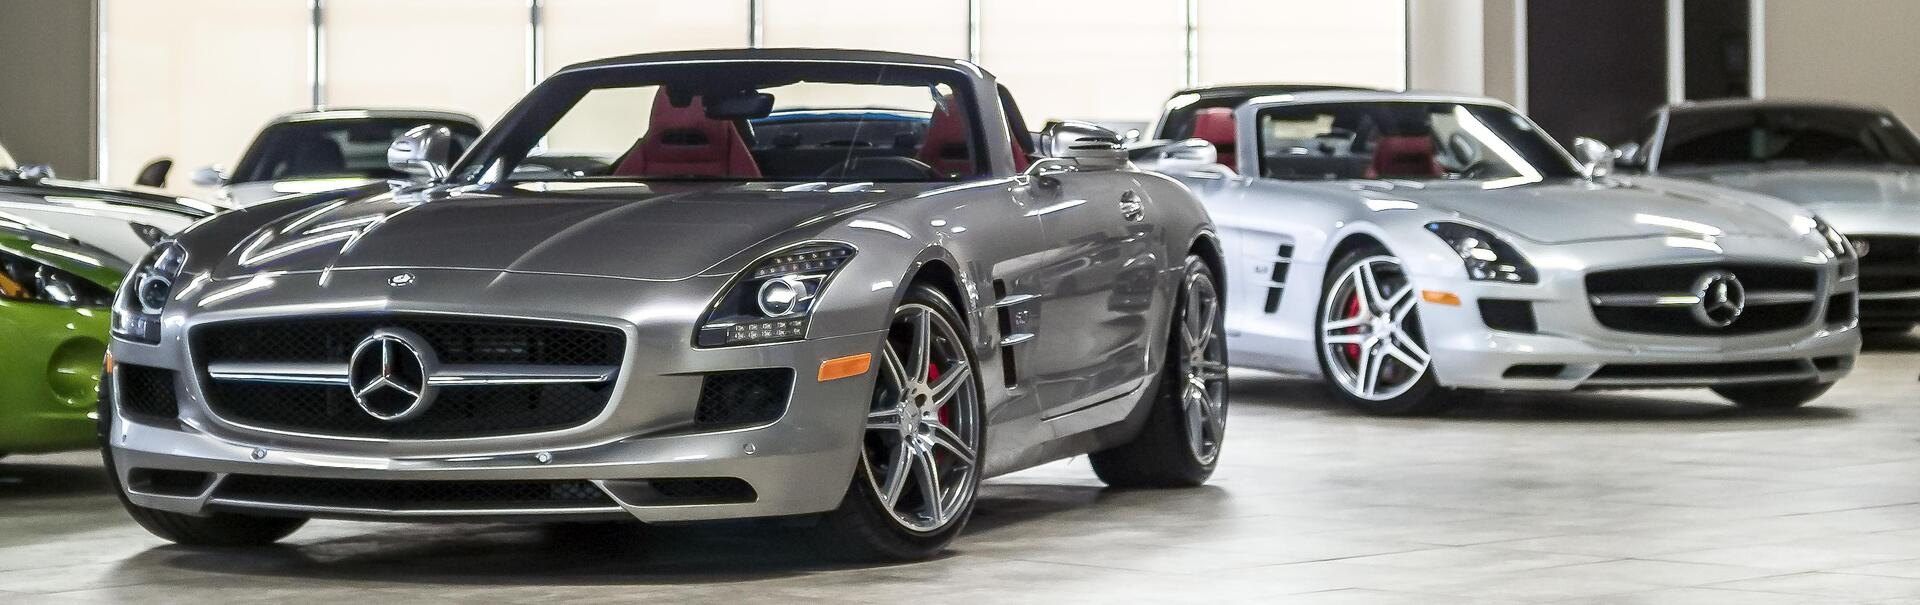 Chicago Motor Cars SLS AMG